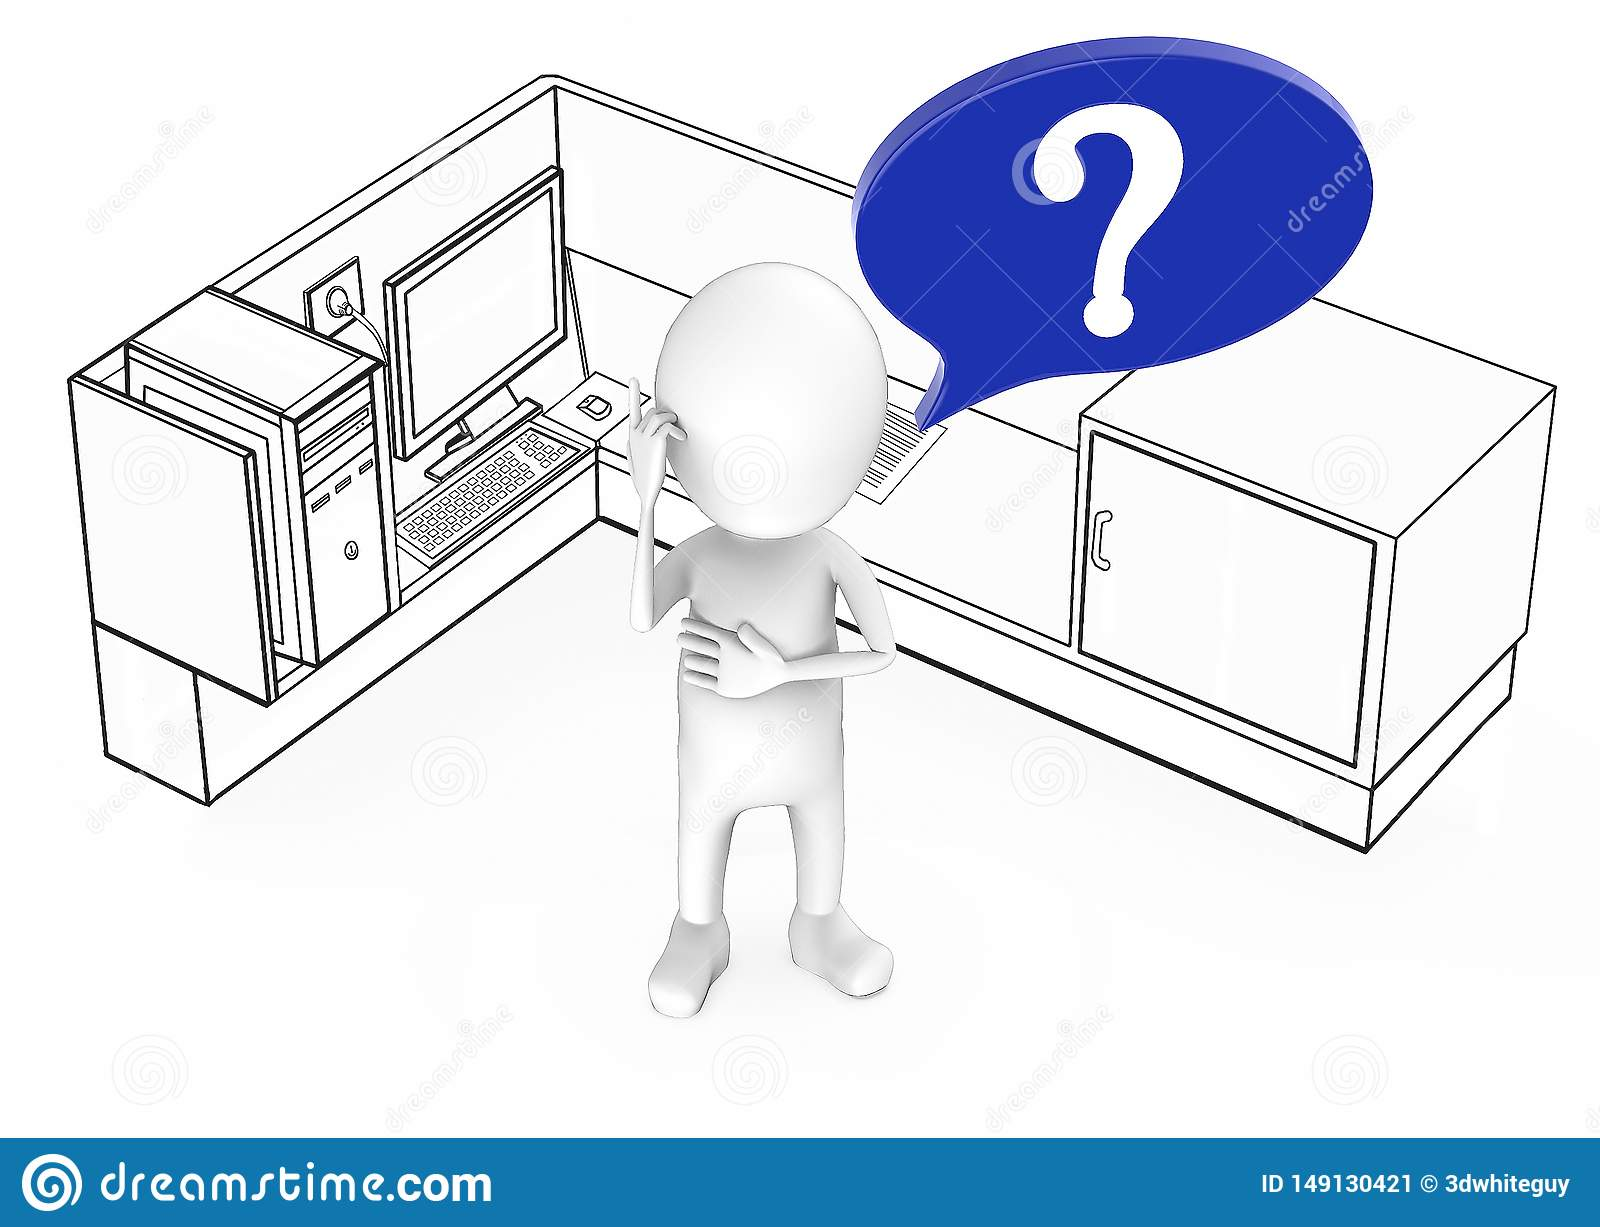 3d white guy with question mark in speech bubble standing inside a office cubicle